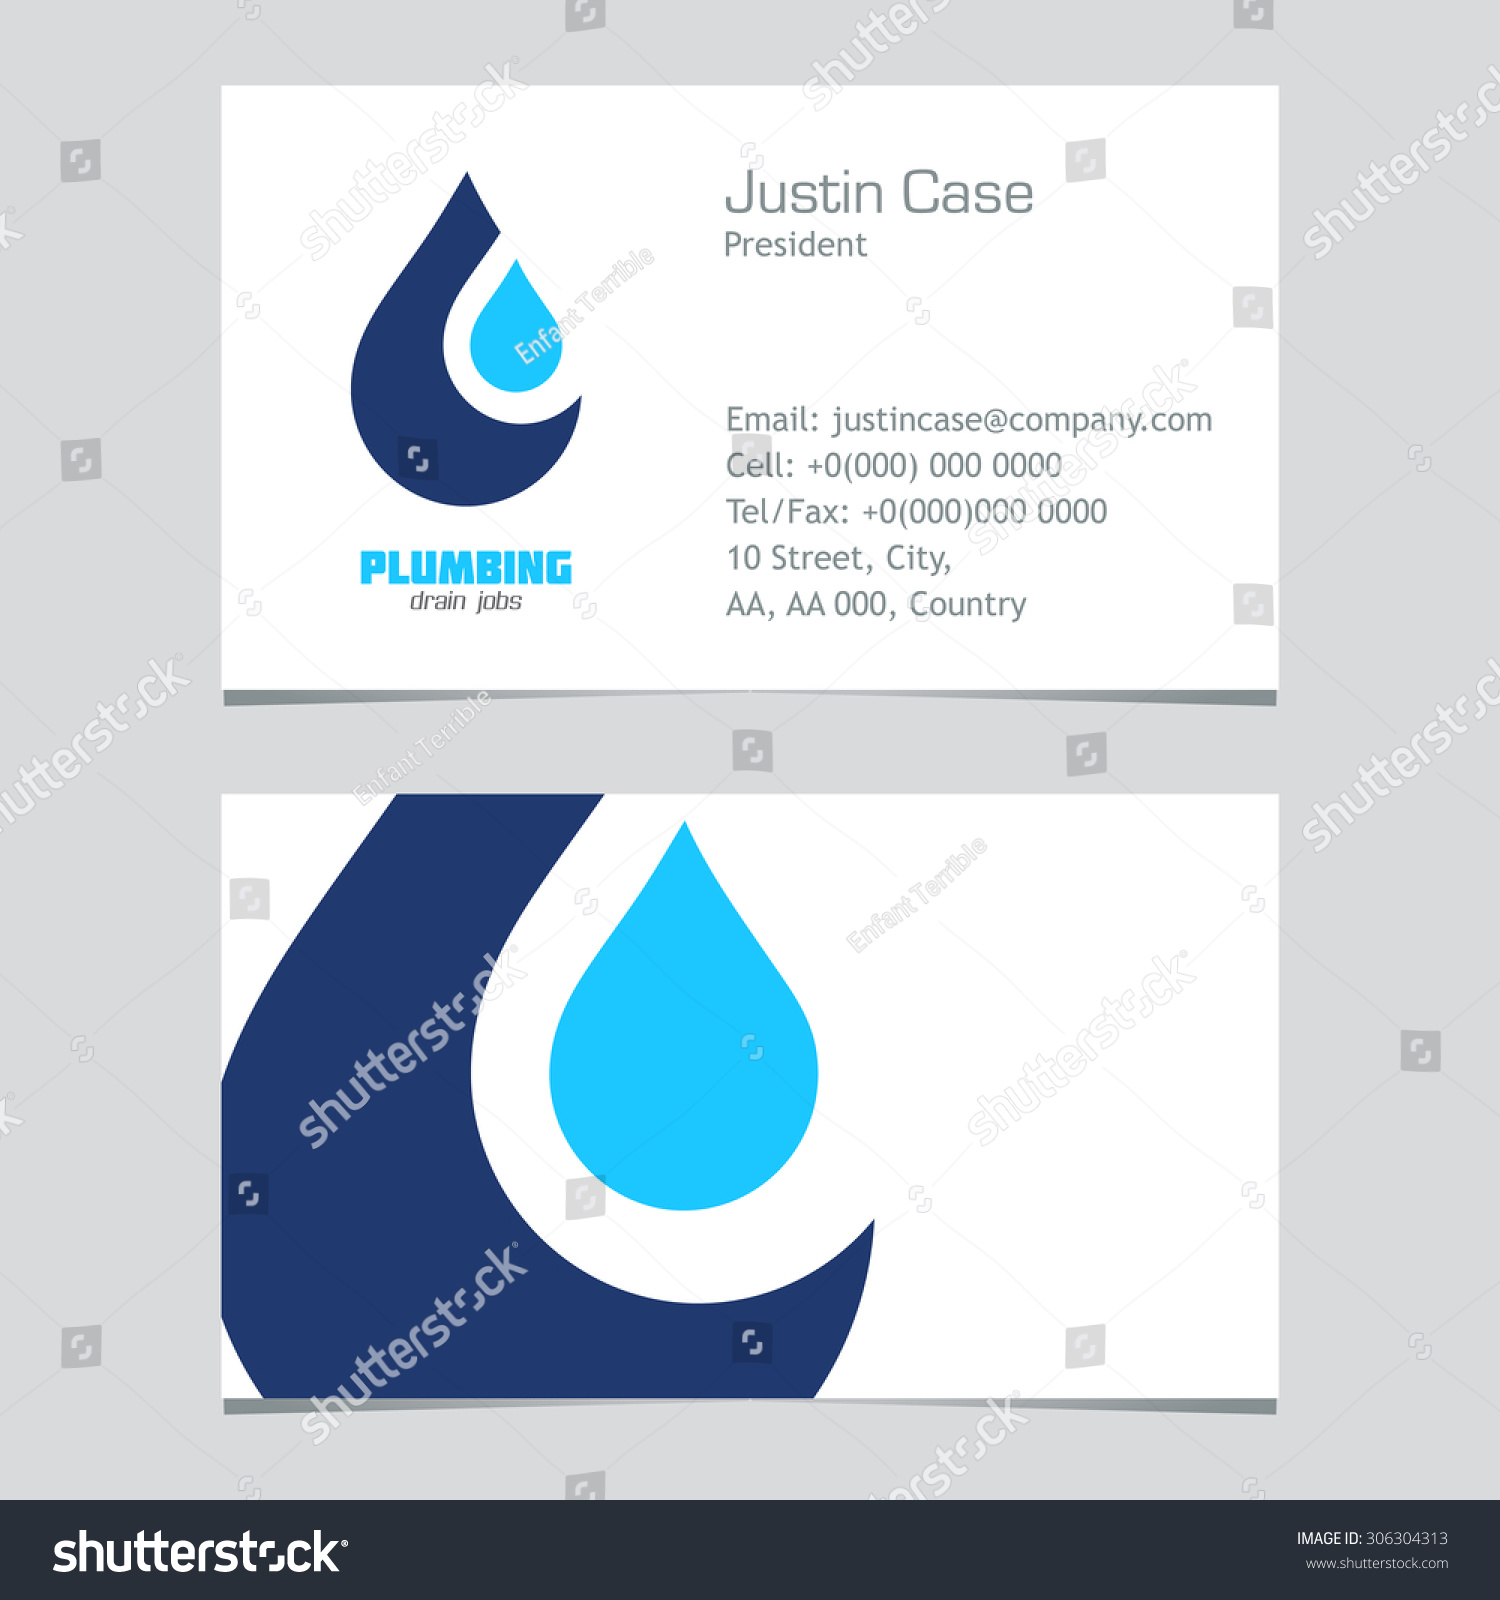 Plumbing business sign business card vector stock vector 306304313 plumbing business sign business card vector template plumbing symbol brand template vector magicingreecefo Image collections